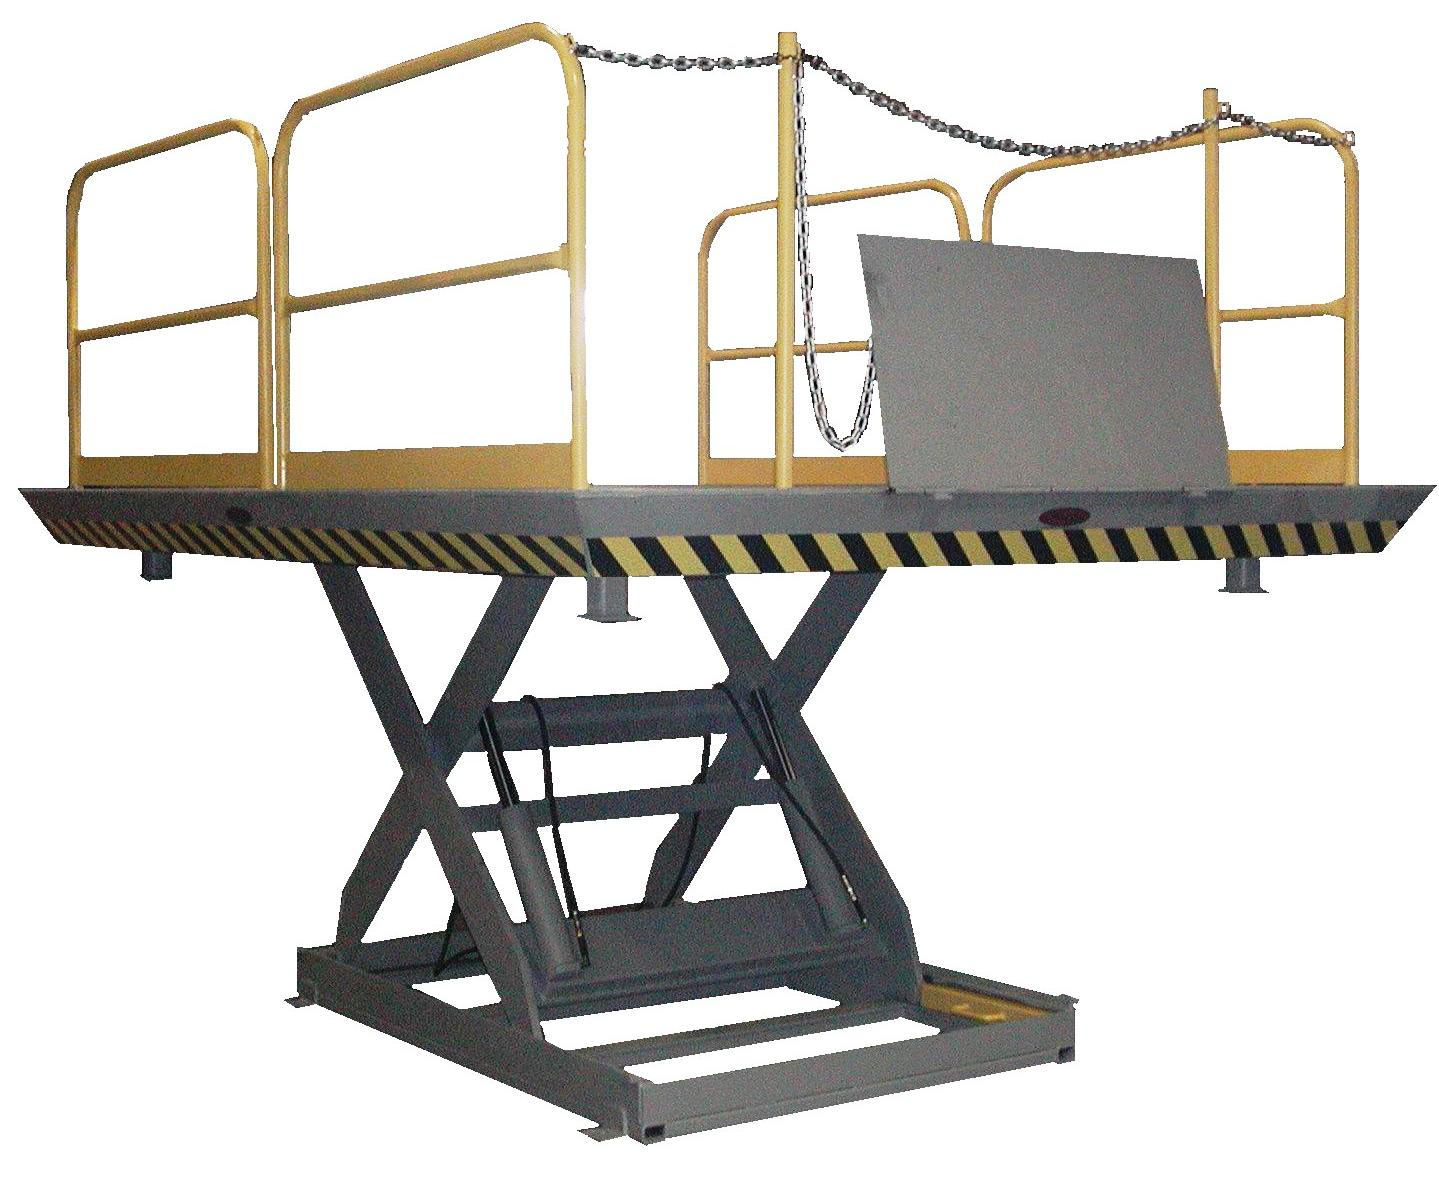 heavy duty dock lifts